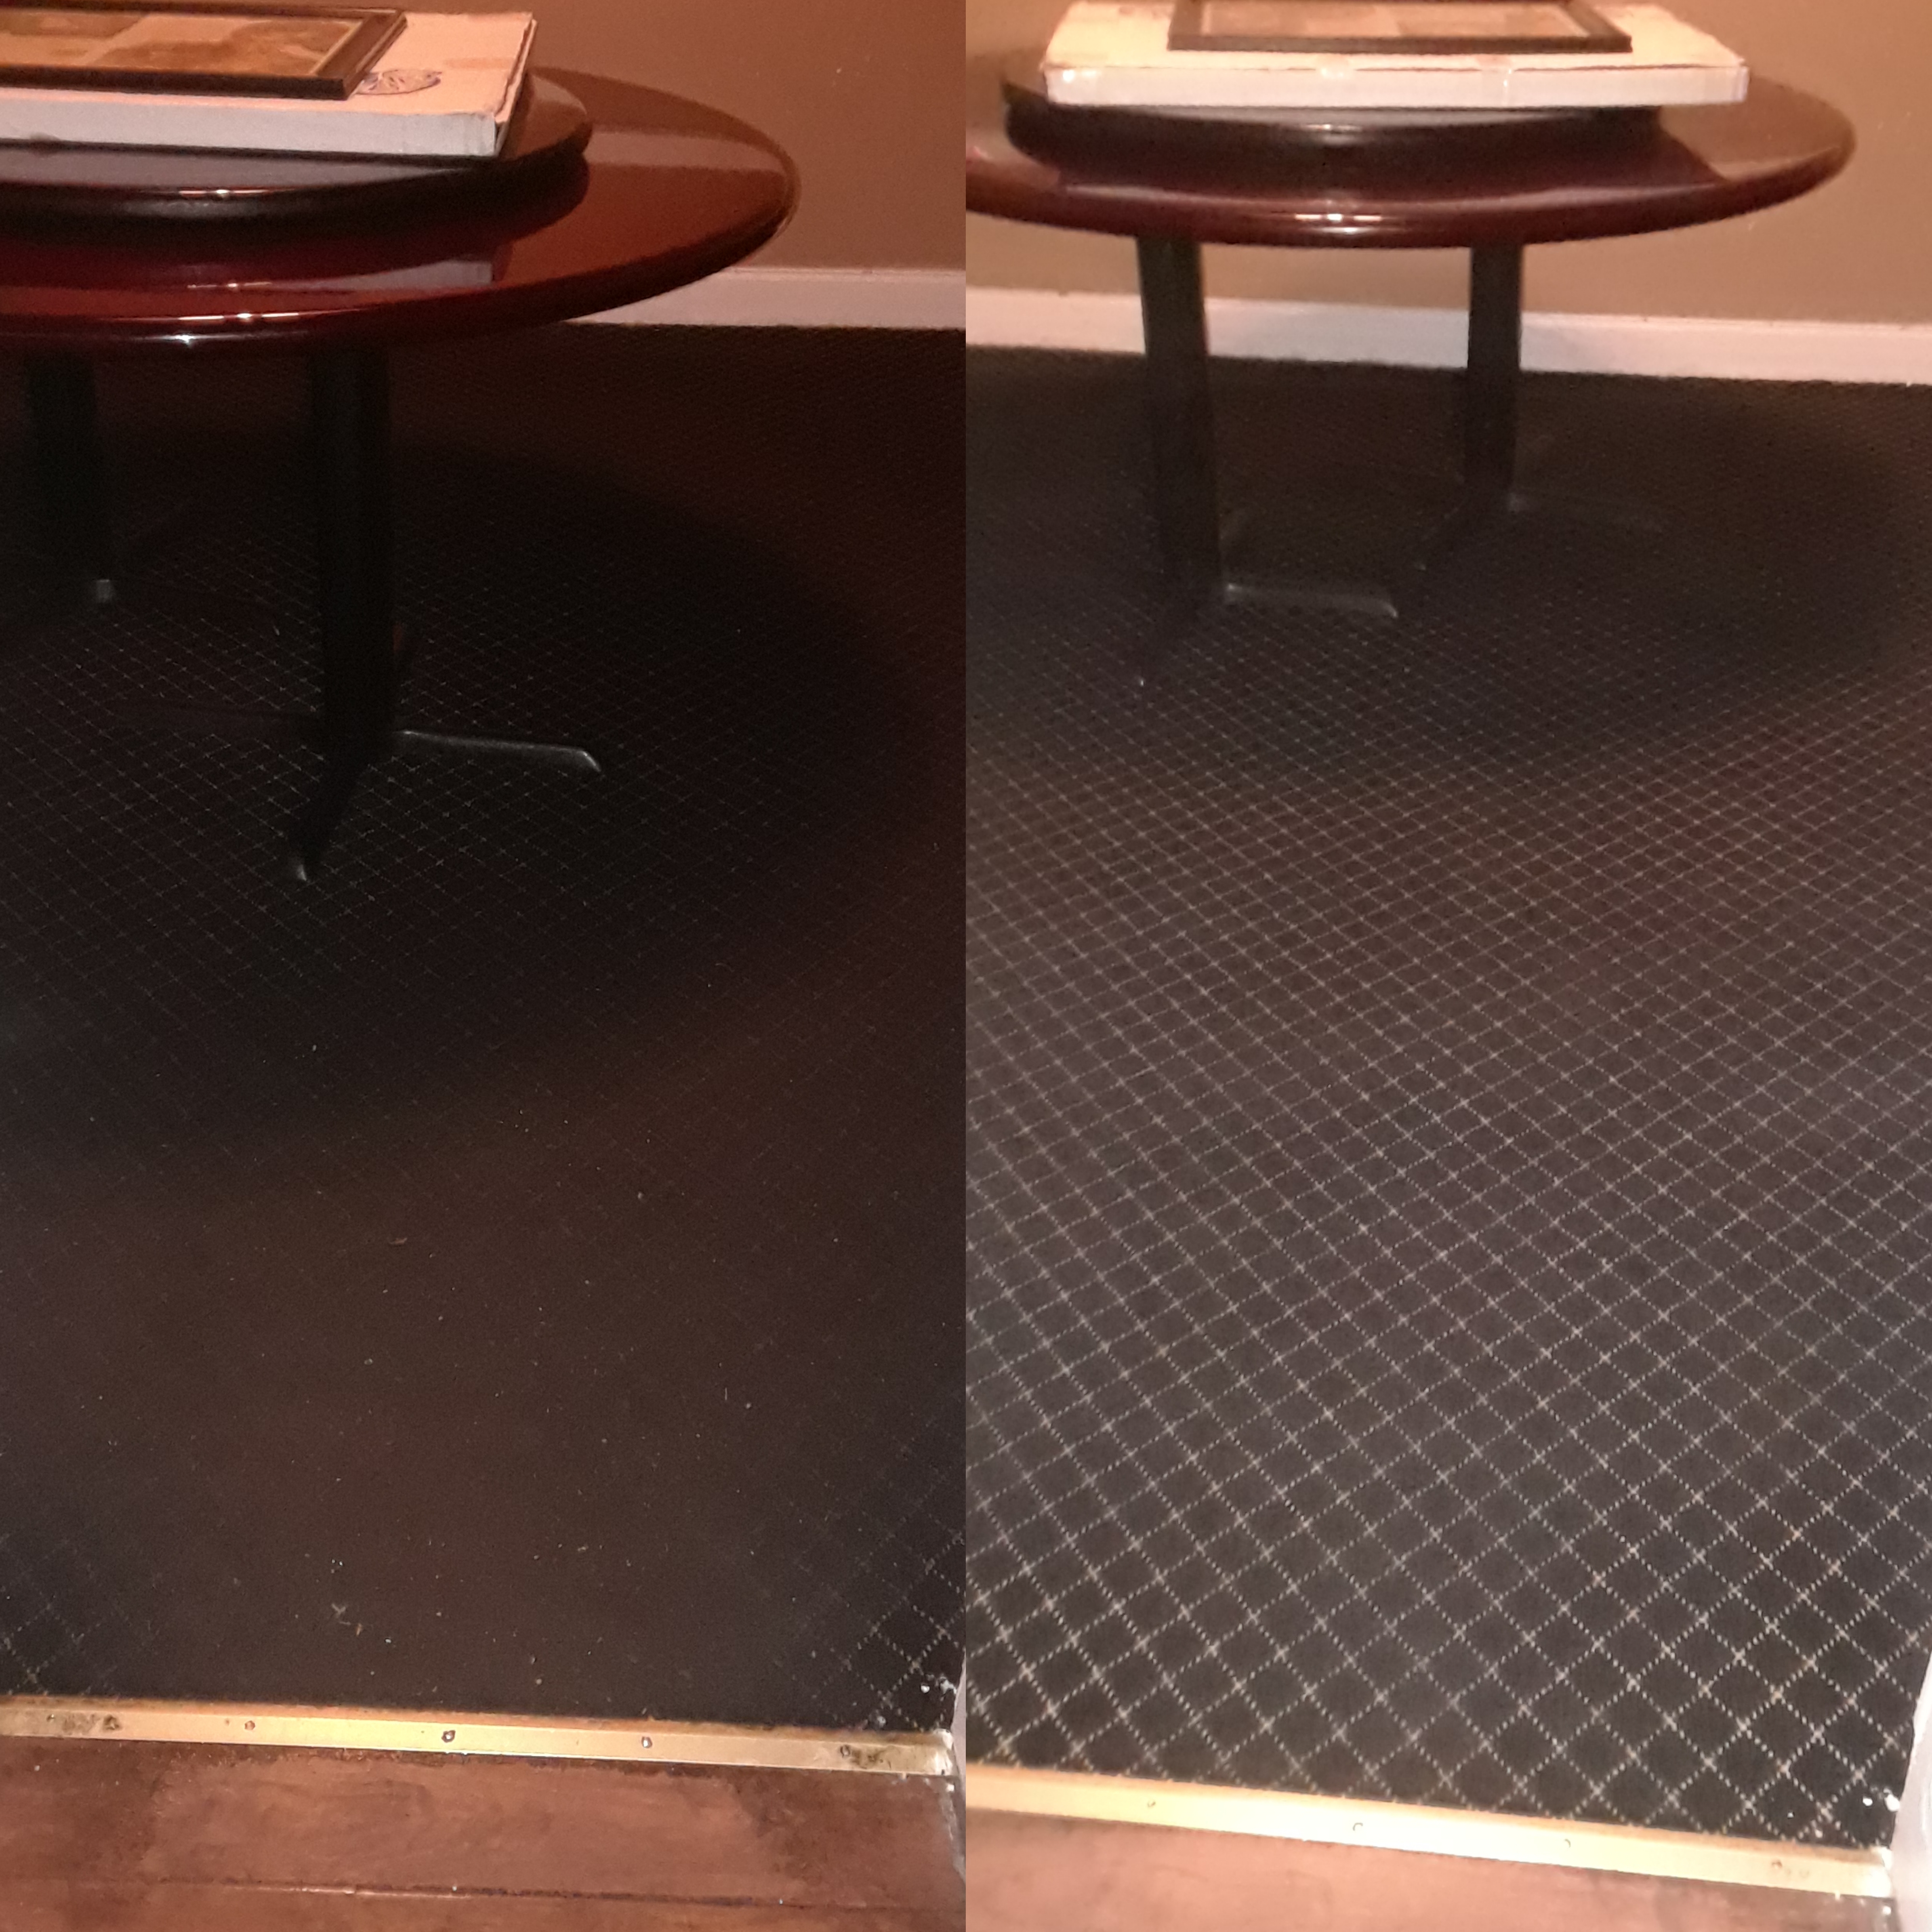 Commercial Carpet Cleaning - Advanced